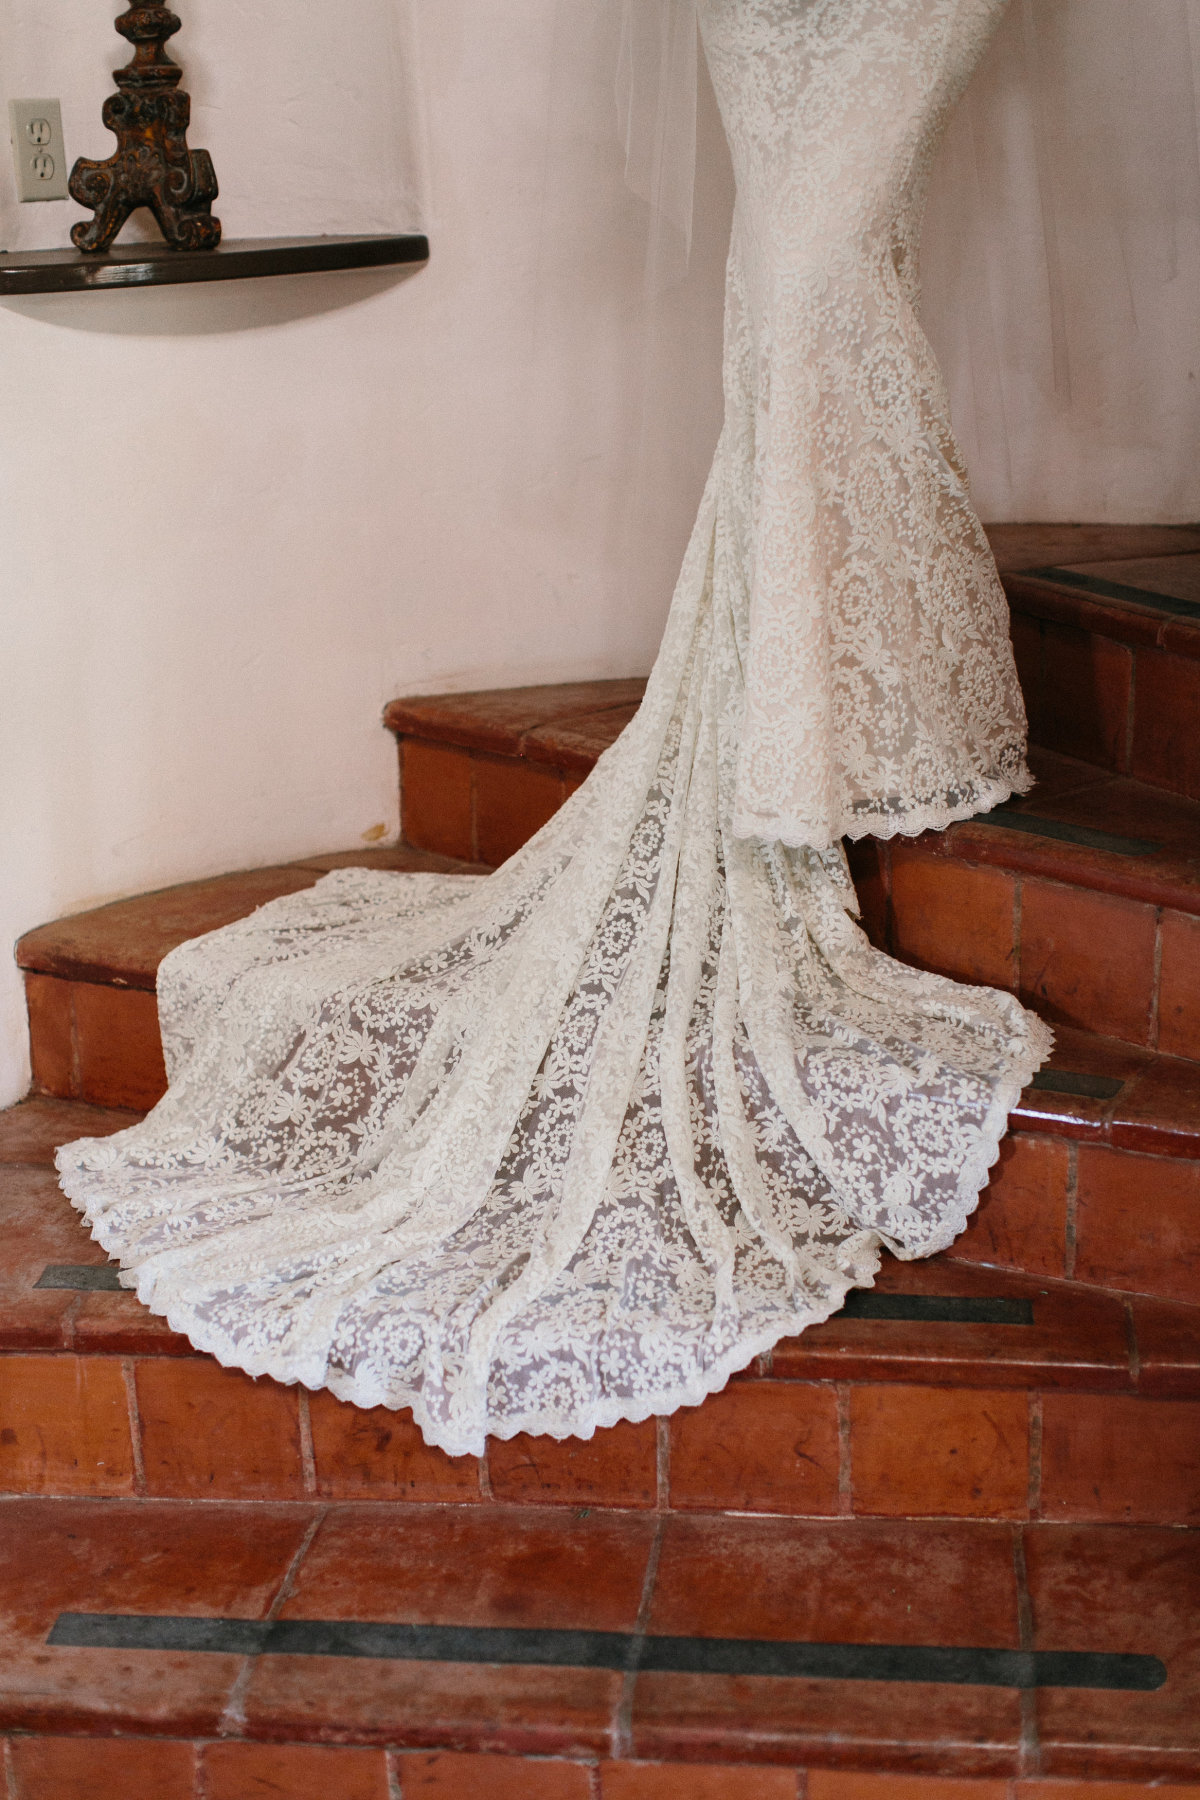 detailed-shot-of-alice-bohemian-backless-gown-against-tiled-stairs-rustic-beauty